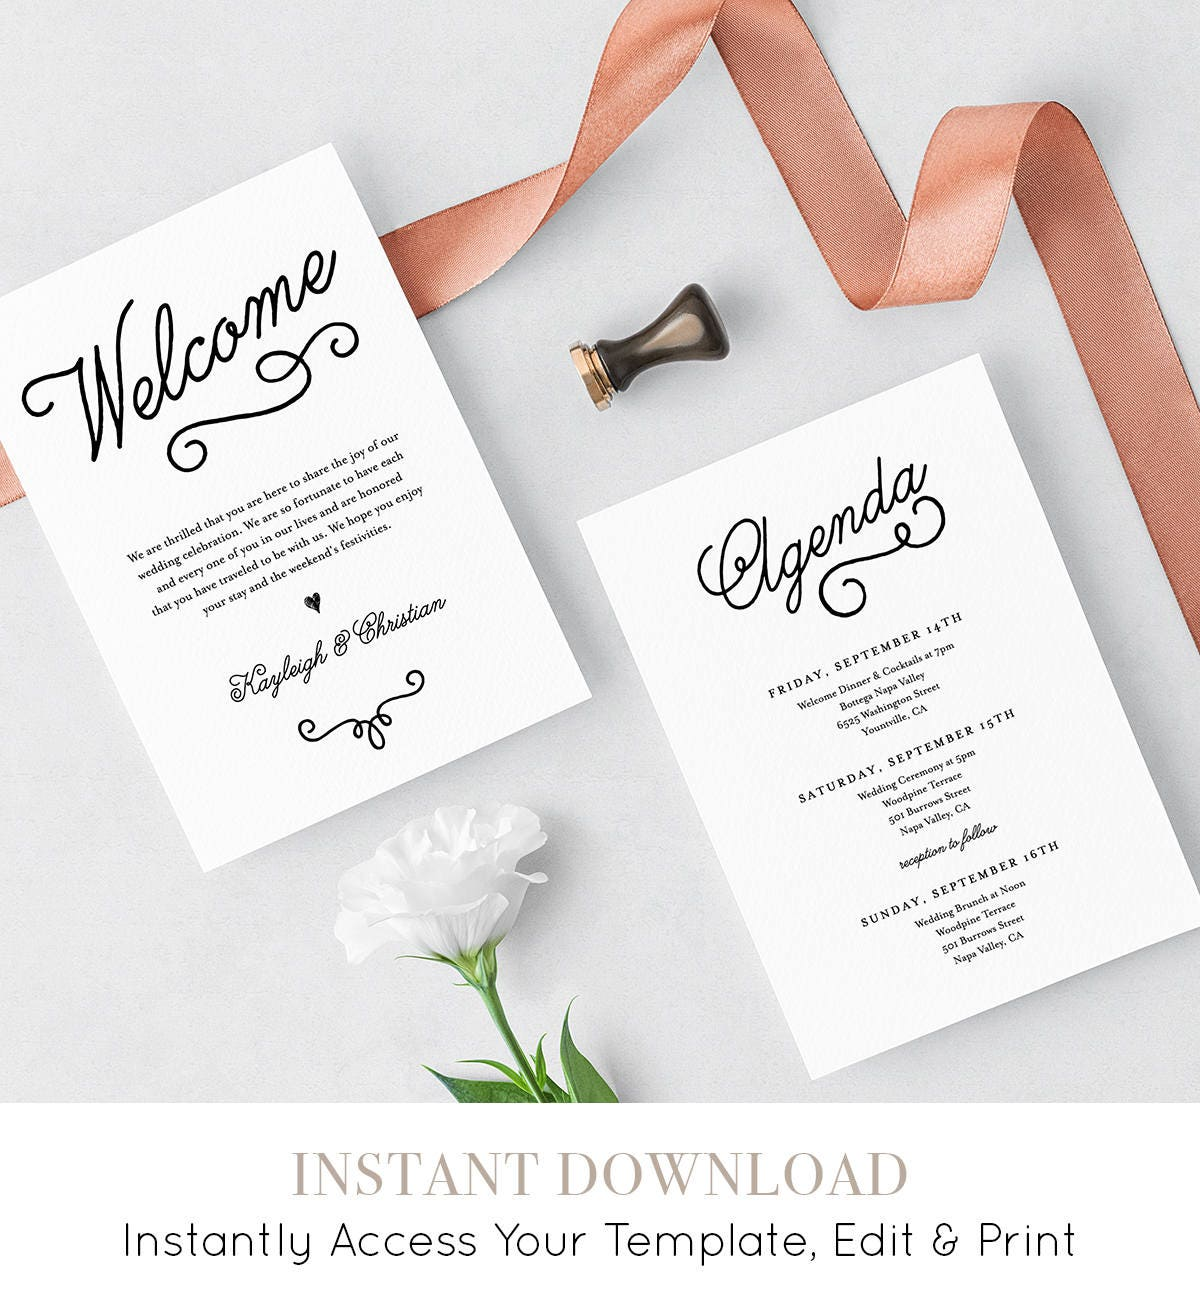 Welcome letter agenda wedding welcome bag card itinerary welcome letter agenda wedding welcome bag card itinerary printable instant download 100 editable template templett diy 035 108wb pronofoot35fo Gallery